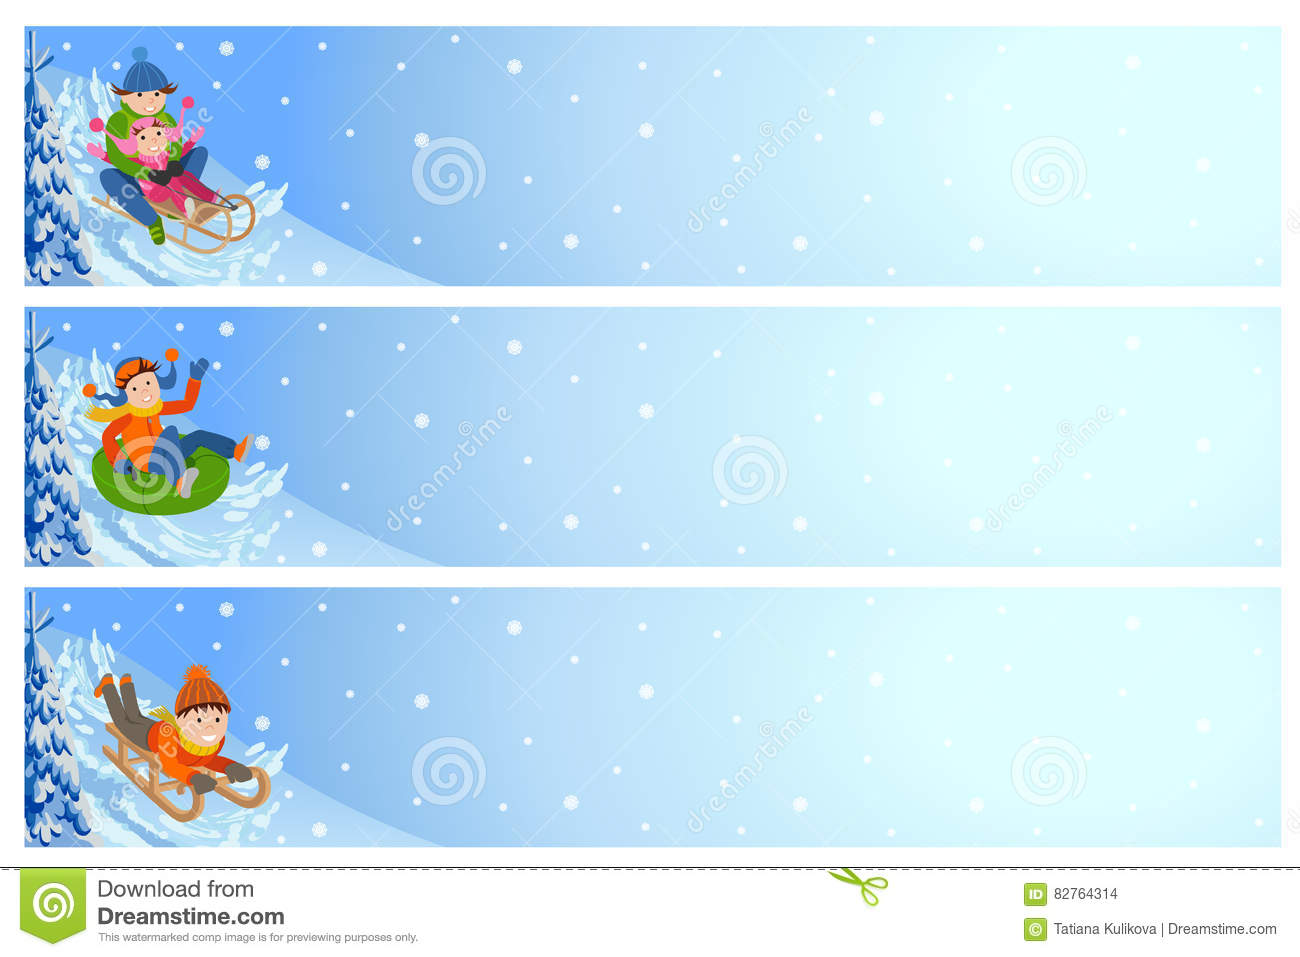 vector illustration of children playing outdoor horizontal flyers vector illustration of children playing outdoor horizontal flyers kids and winter landscape